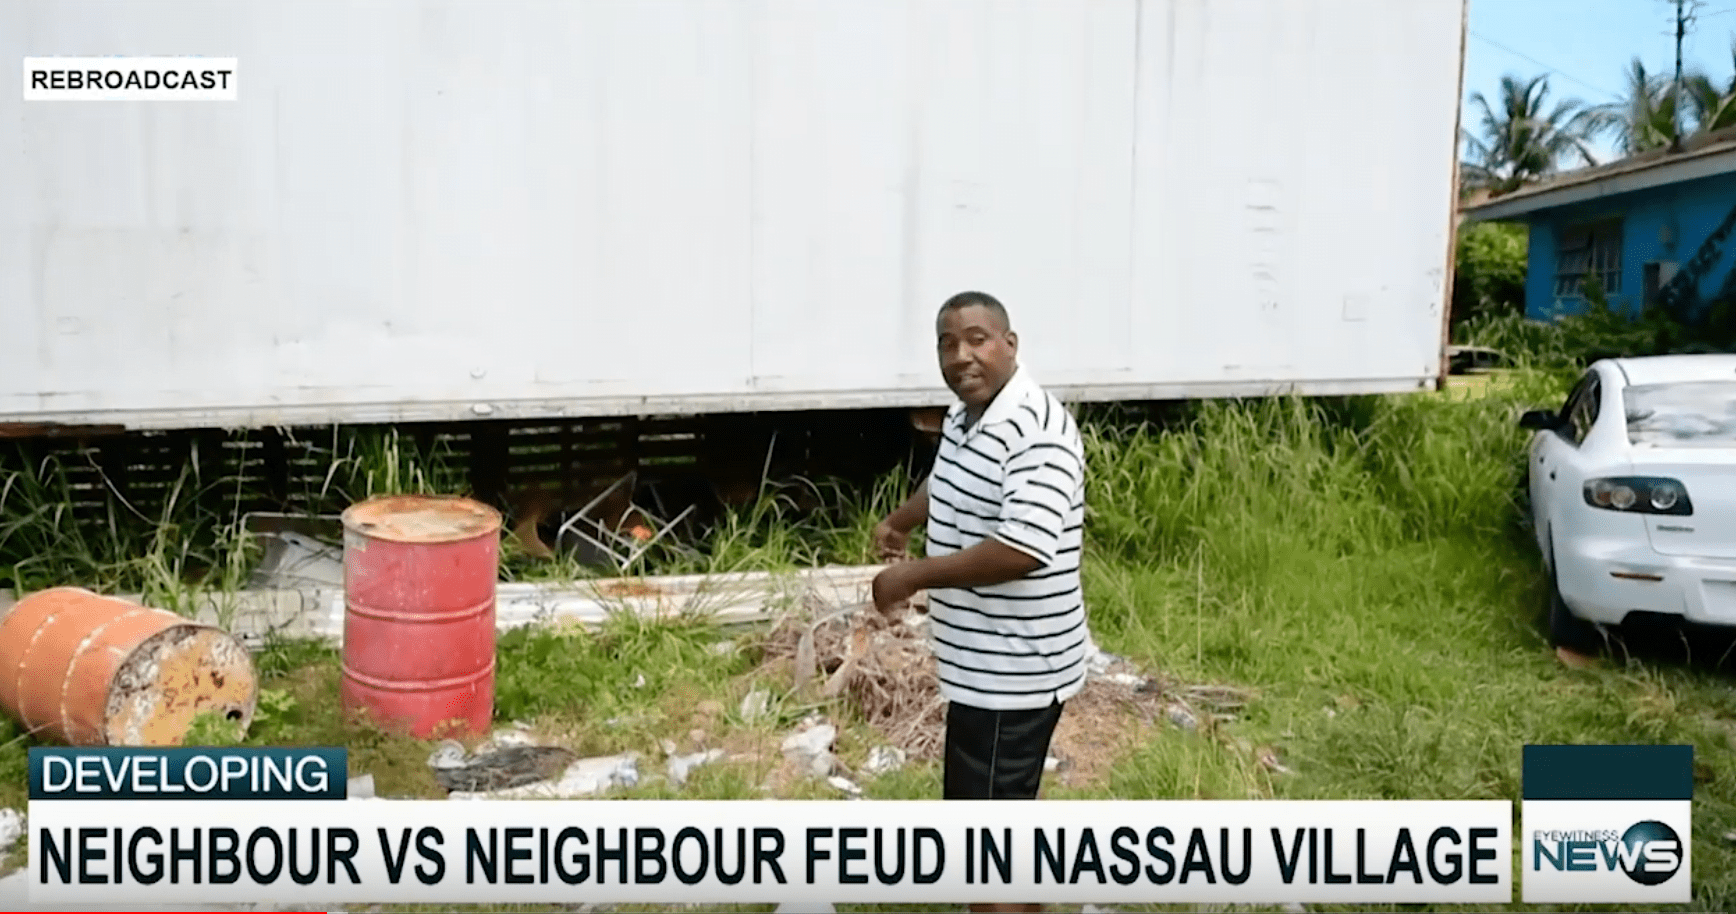 Neighbours feud in Nassau Village